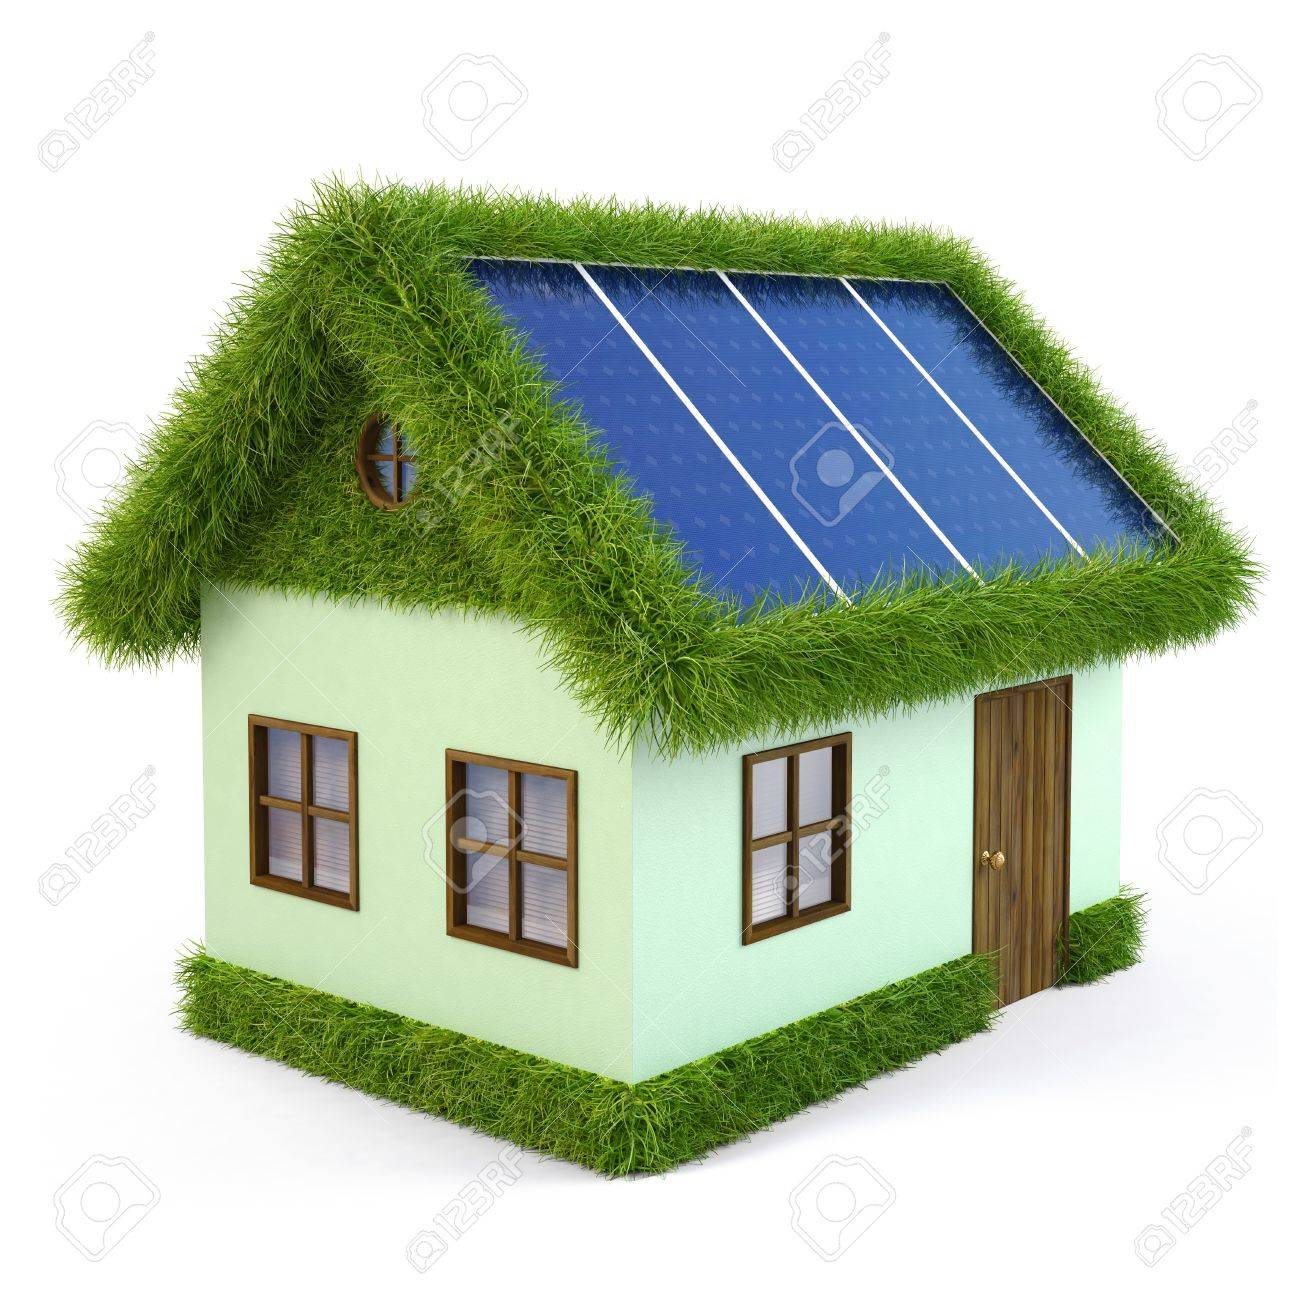 House from the grass with solar panels on the roof. isolated on white. Stock Photo - 10083479